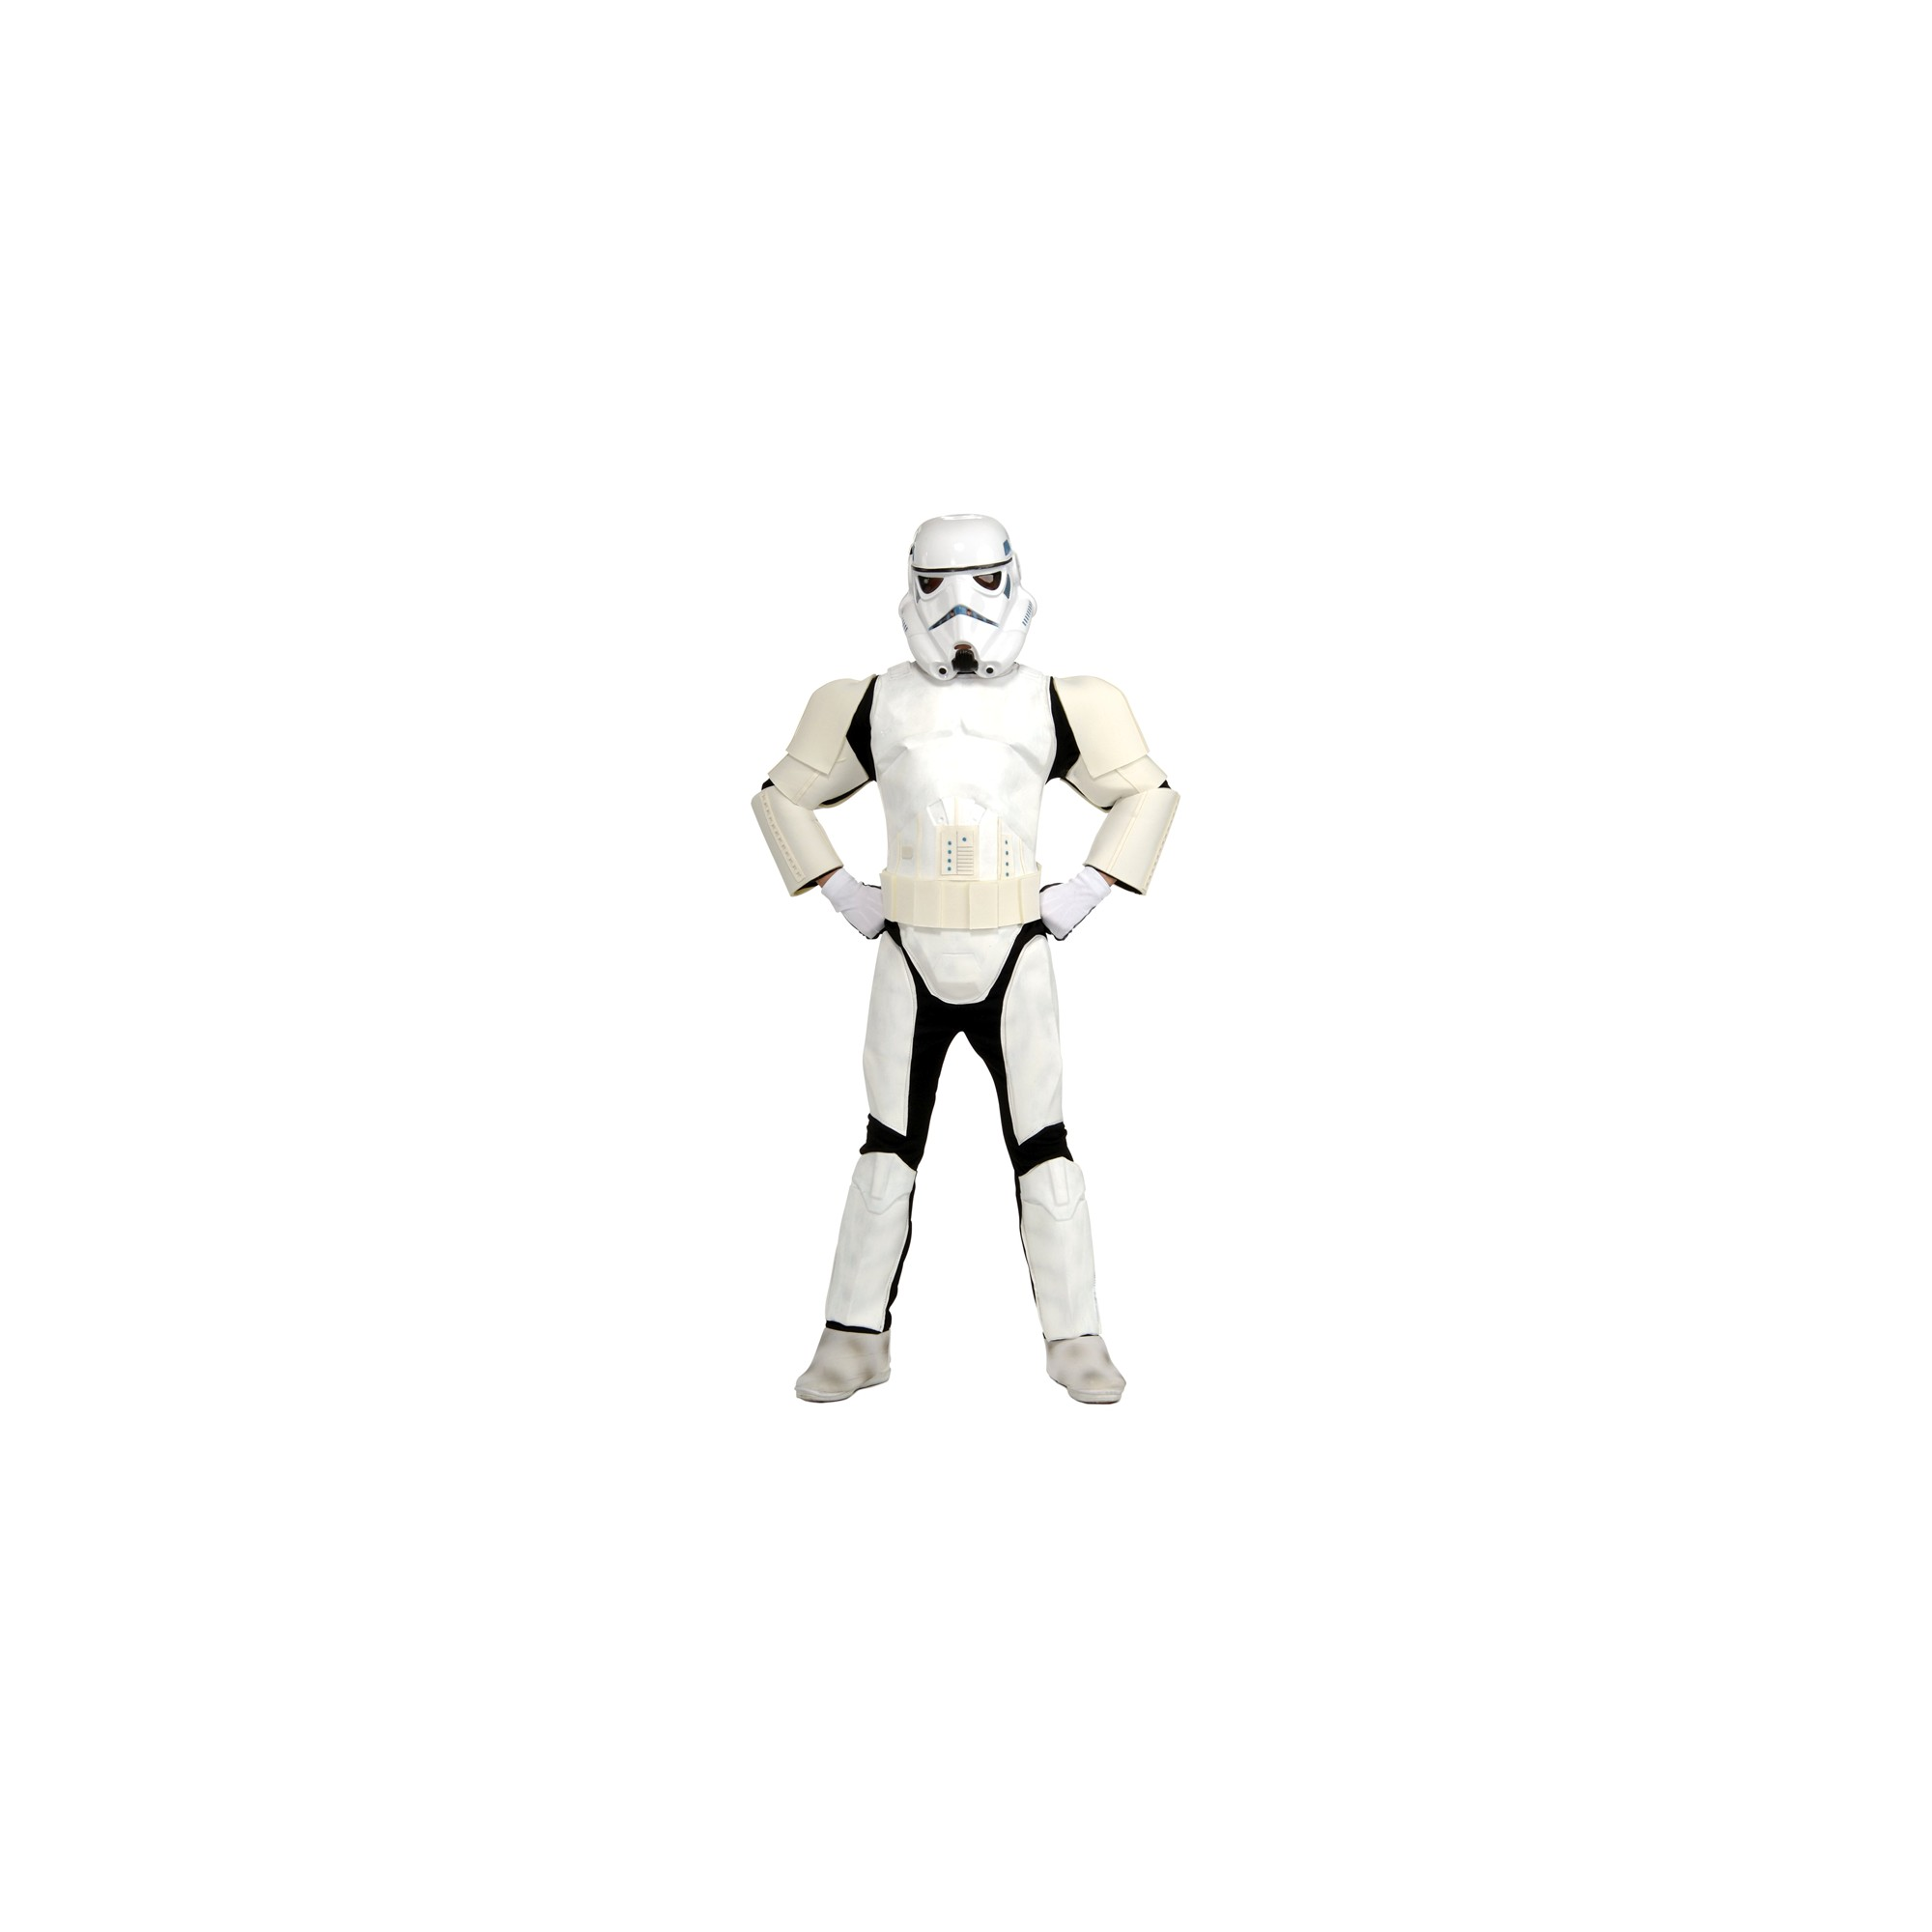 Halloween Star Wars Stormtrooper Kids' Special Edition Costume Large (10-12), Adult Unisex